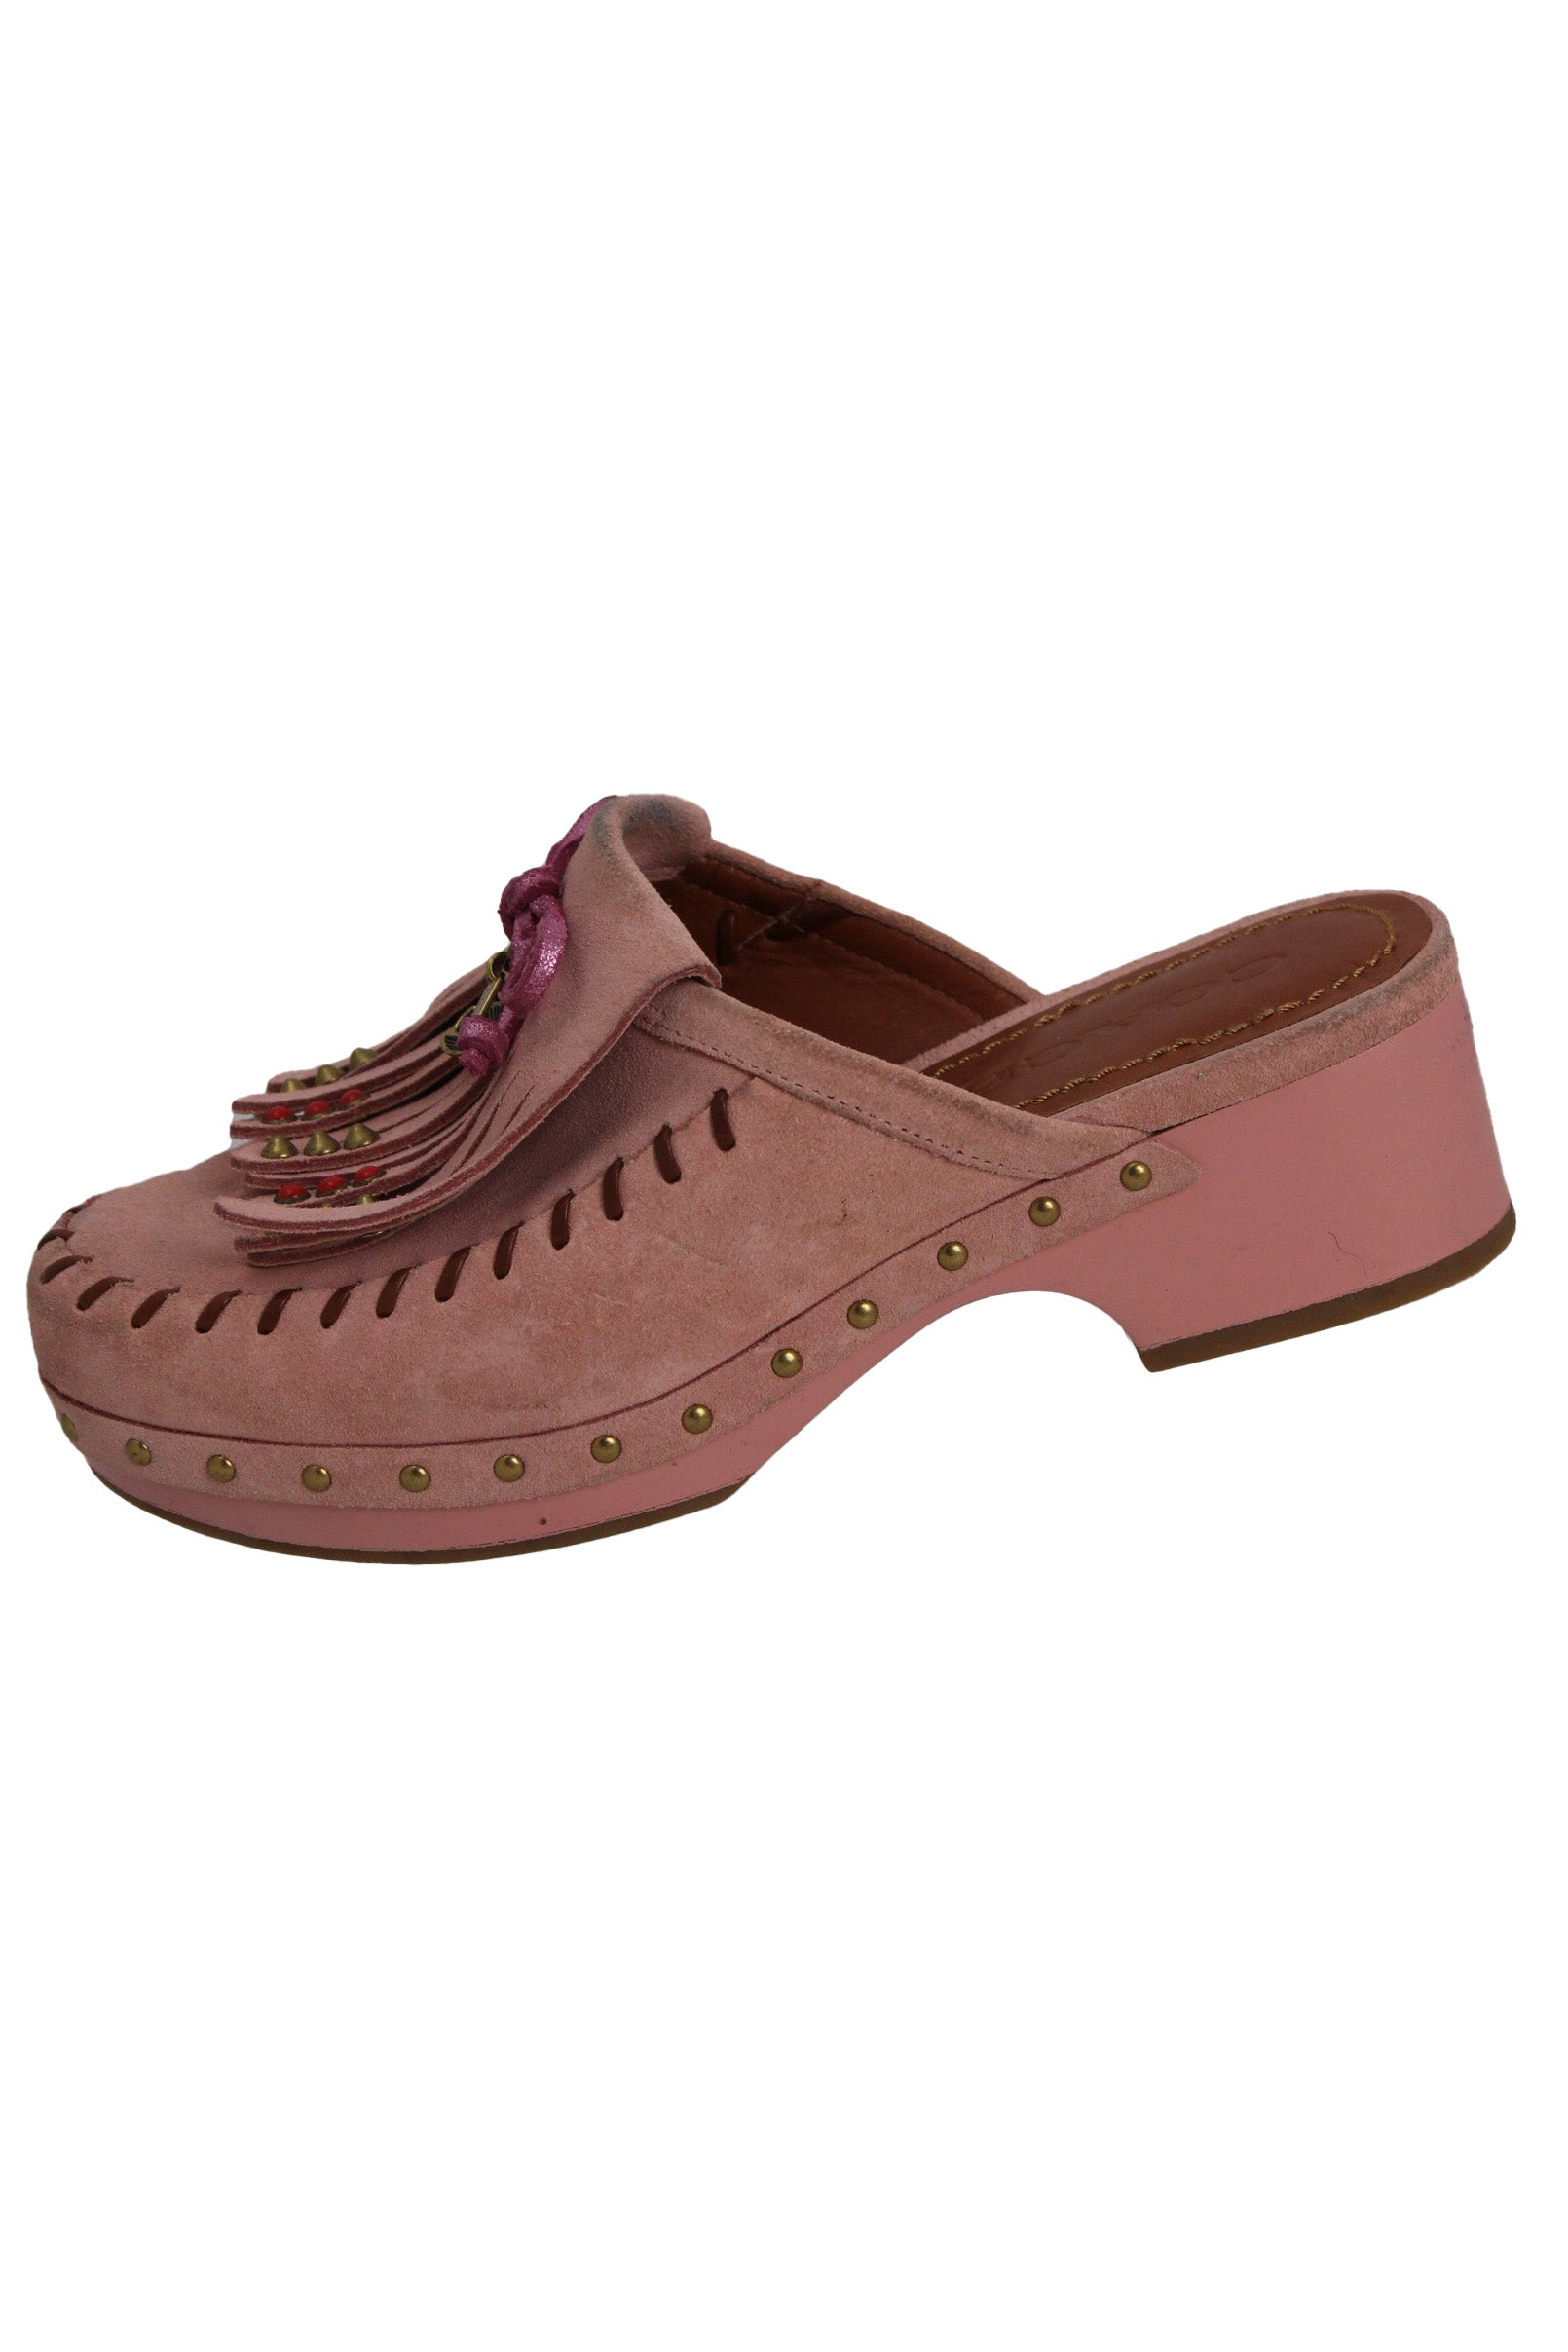 coach pink clogs. features pink bow at tongue with gold tone charms attached, fringe, red and gold tone studs throughout with brown stitch details and a tonal chunky heel.